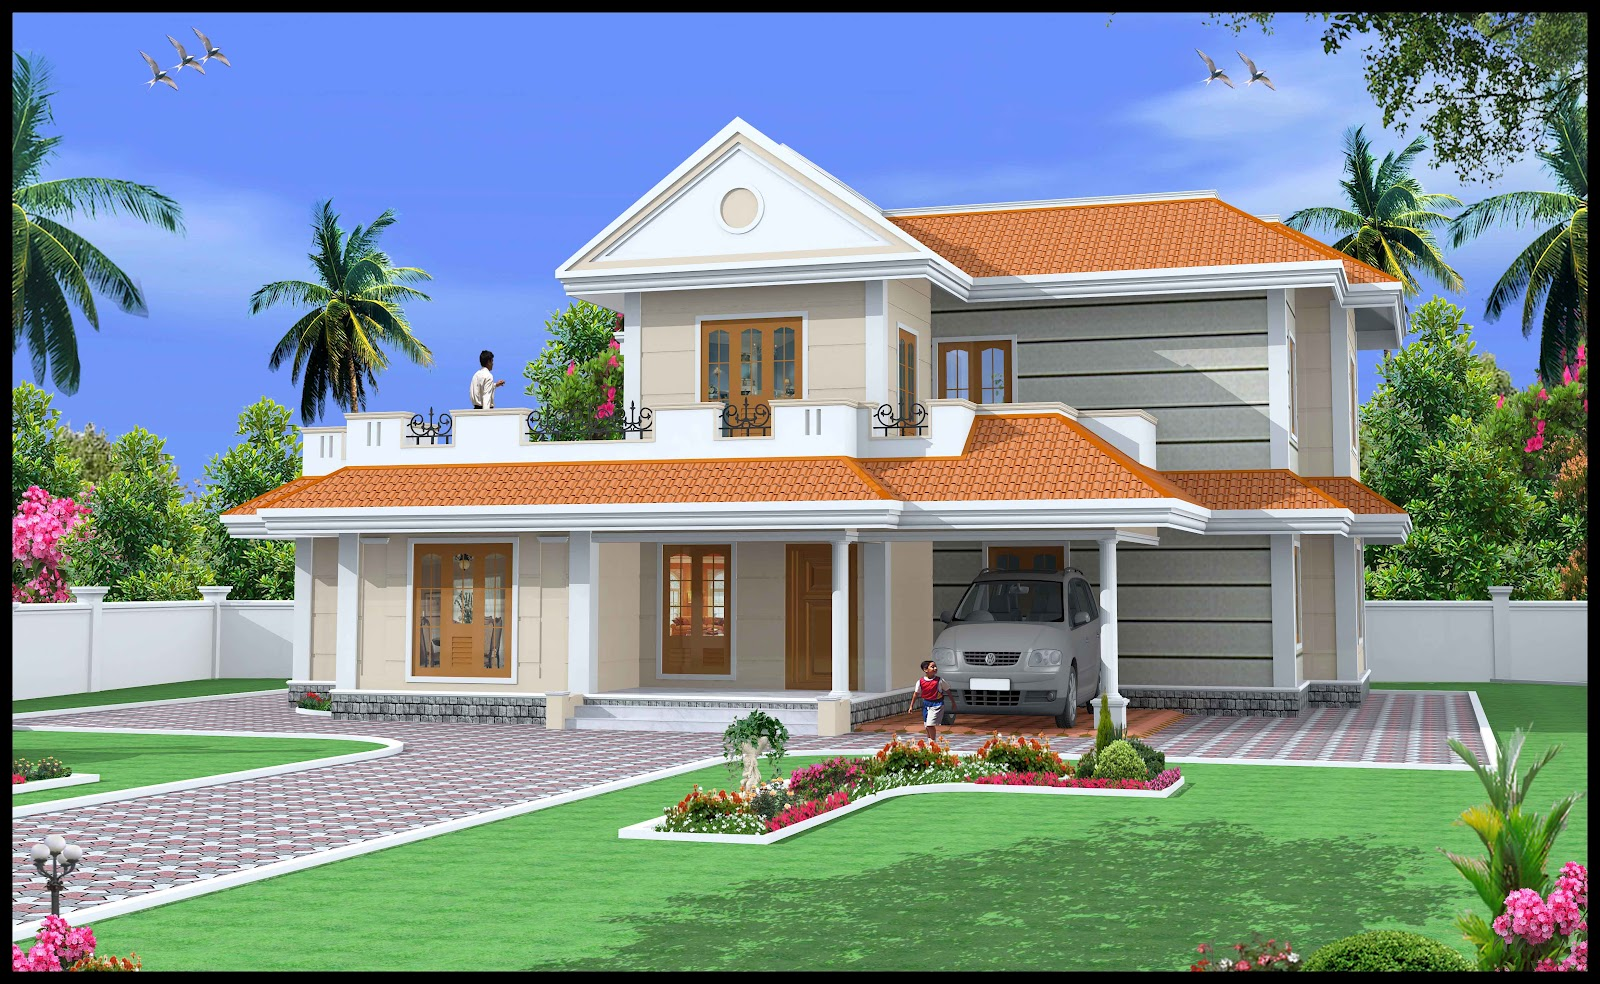 Green homes construction indian style duplex house 2600 for Small duplex house plans in india